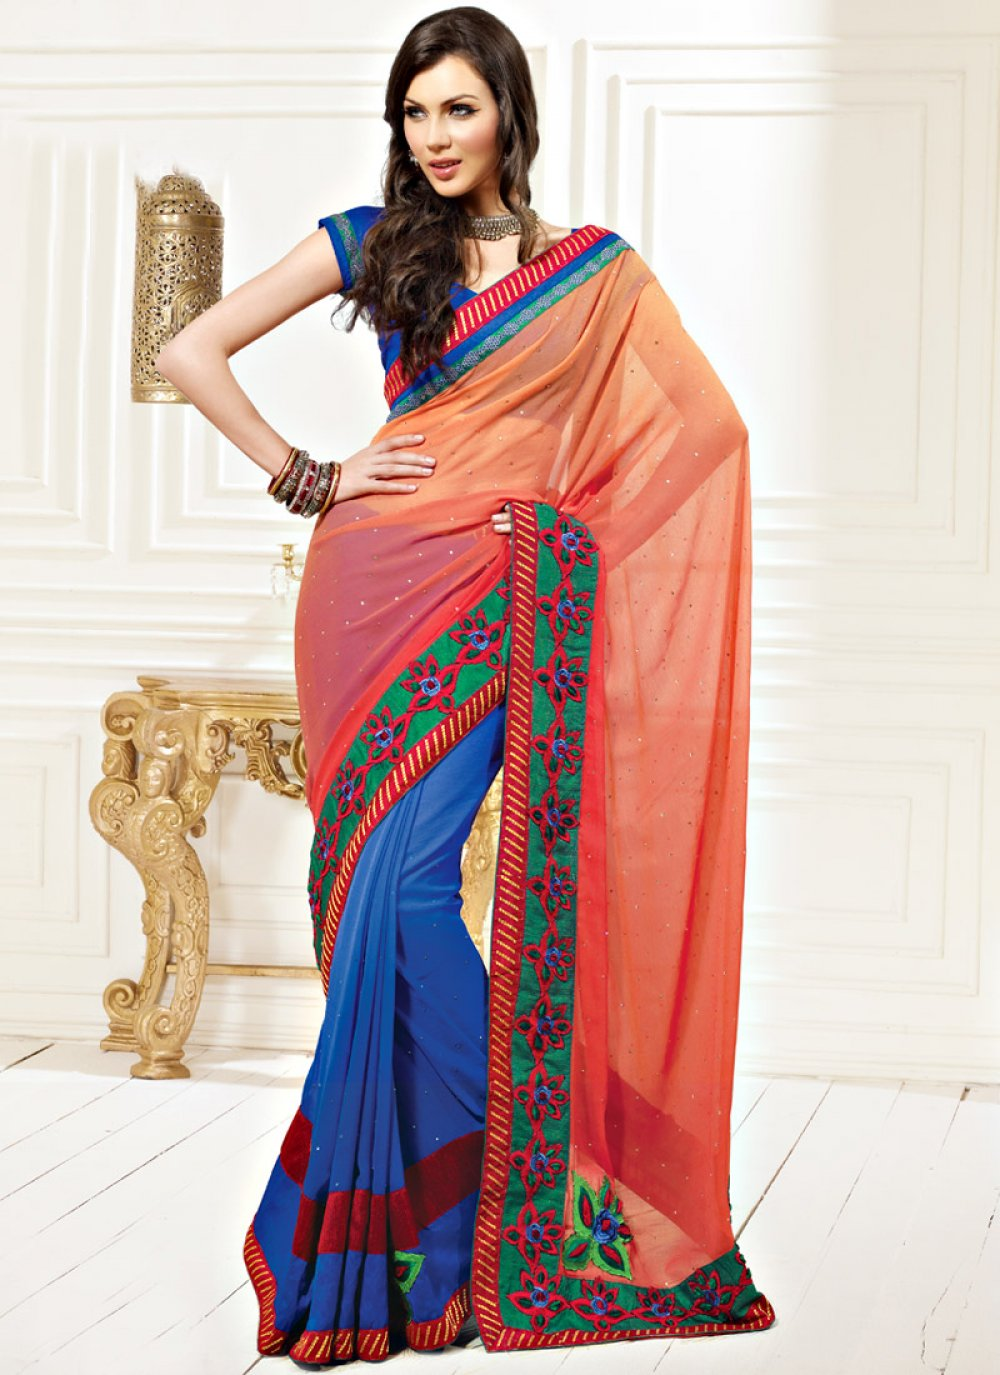 Peach and Blue Faux Chiffon and Faux Georgette Saree